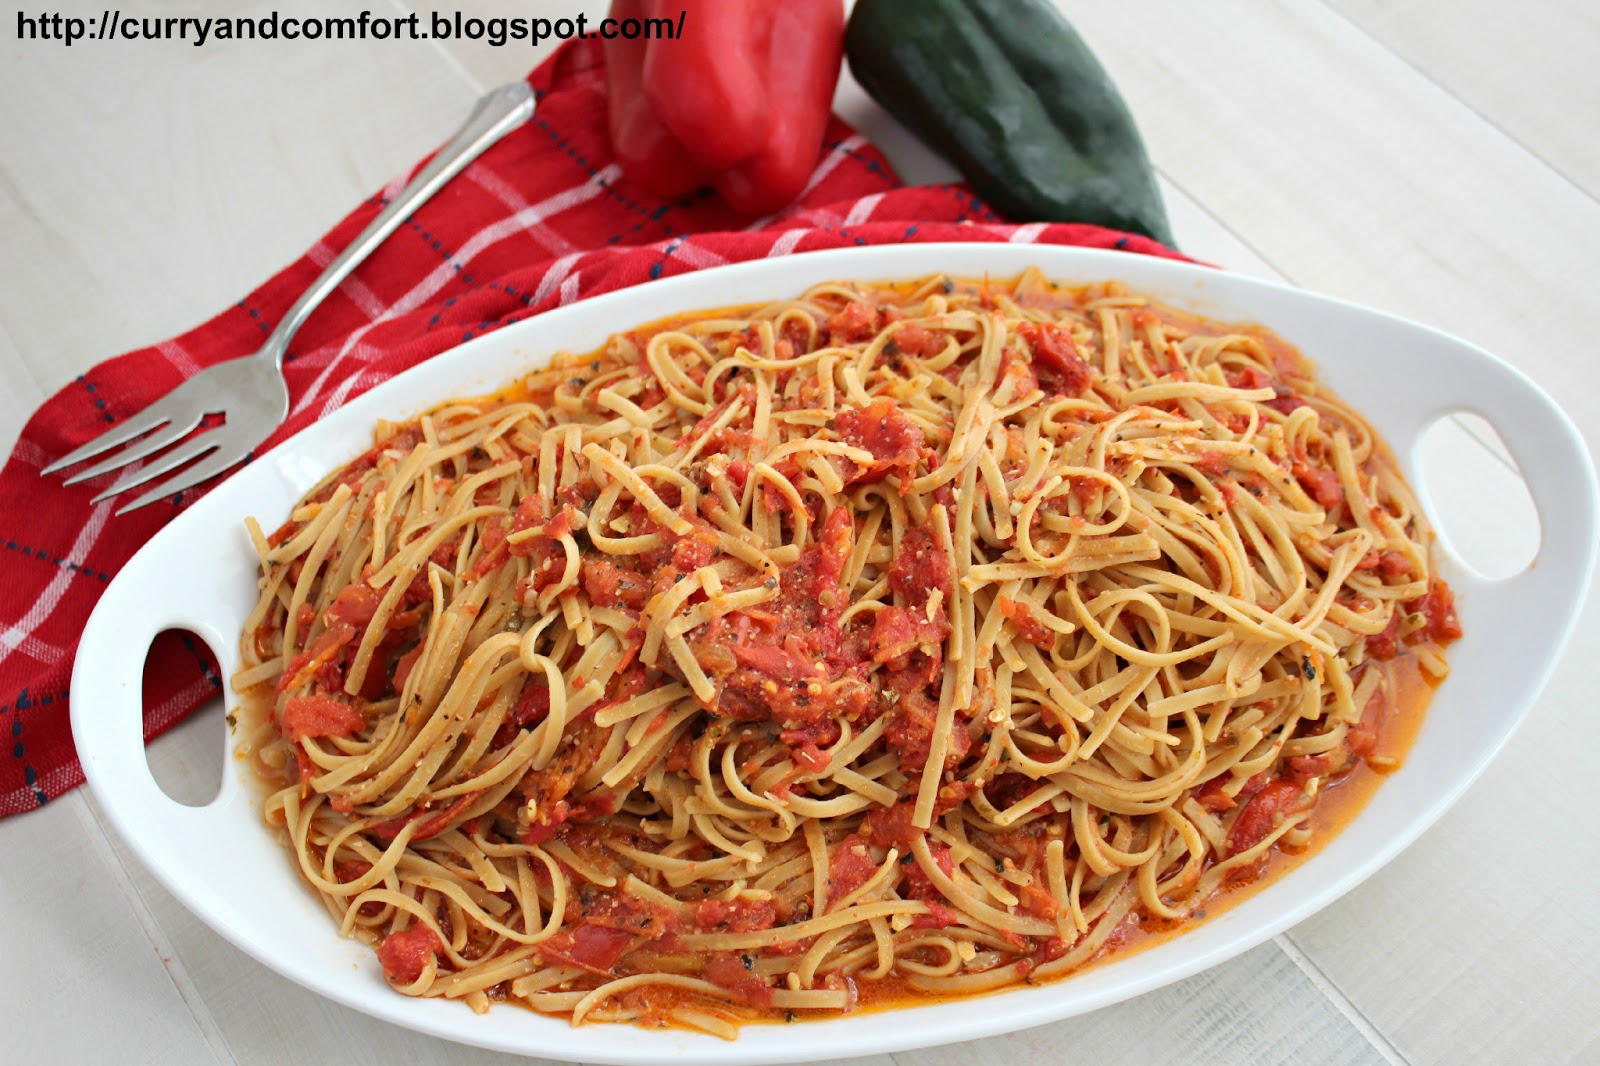 ... tomato sauce for pasta i love the flavors you get out of tomatoes